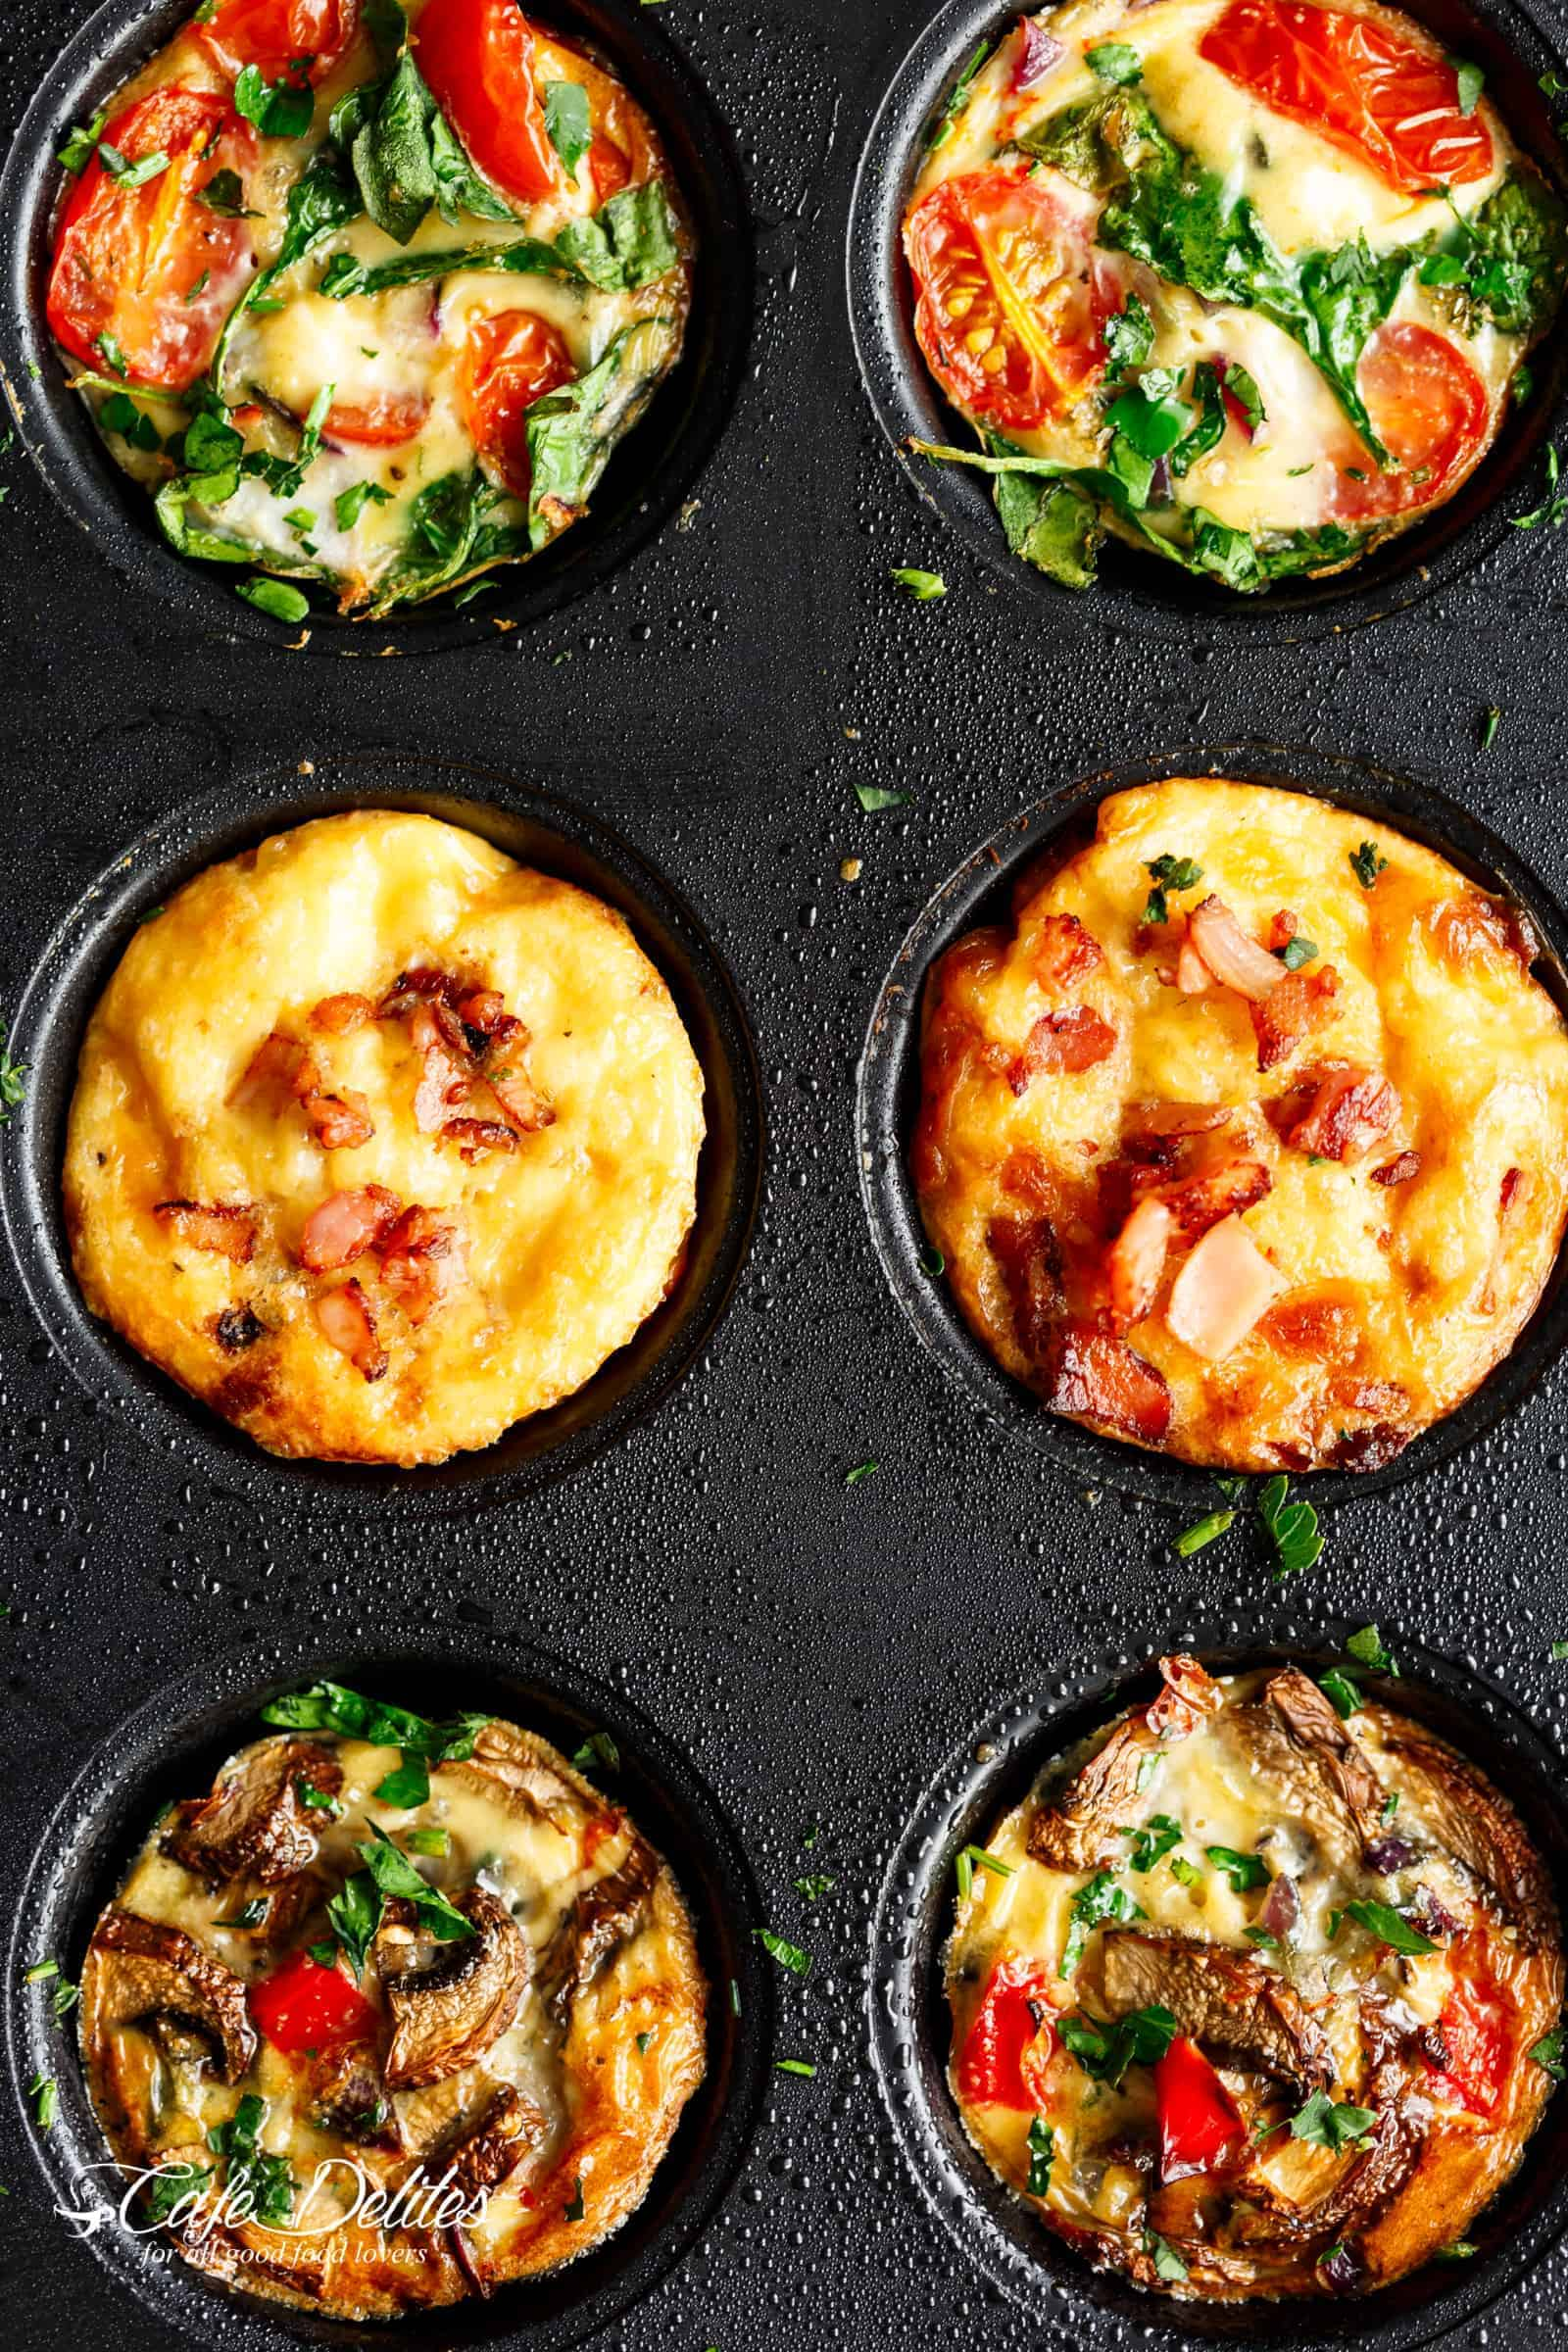 Breakfast Egg Muffins 3 Ways | cafedelites.com